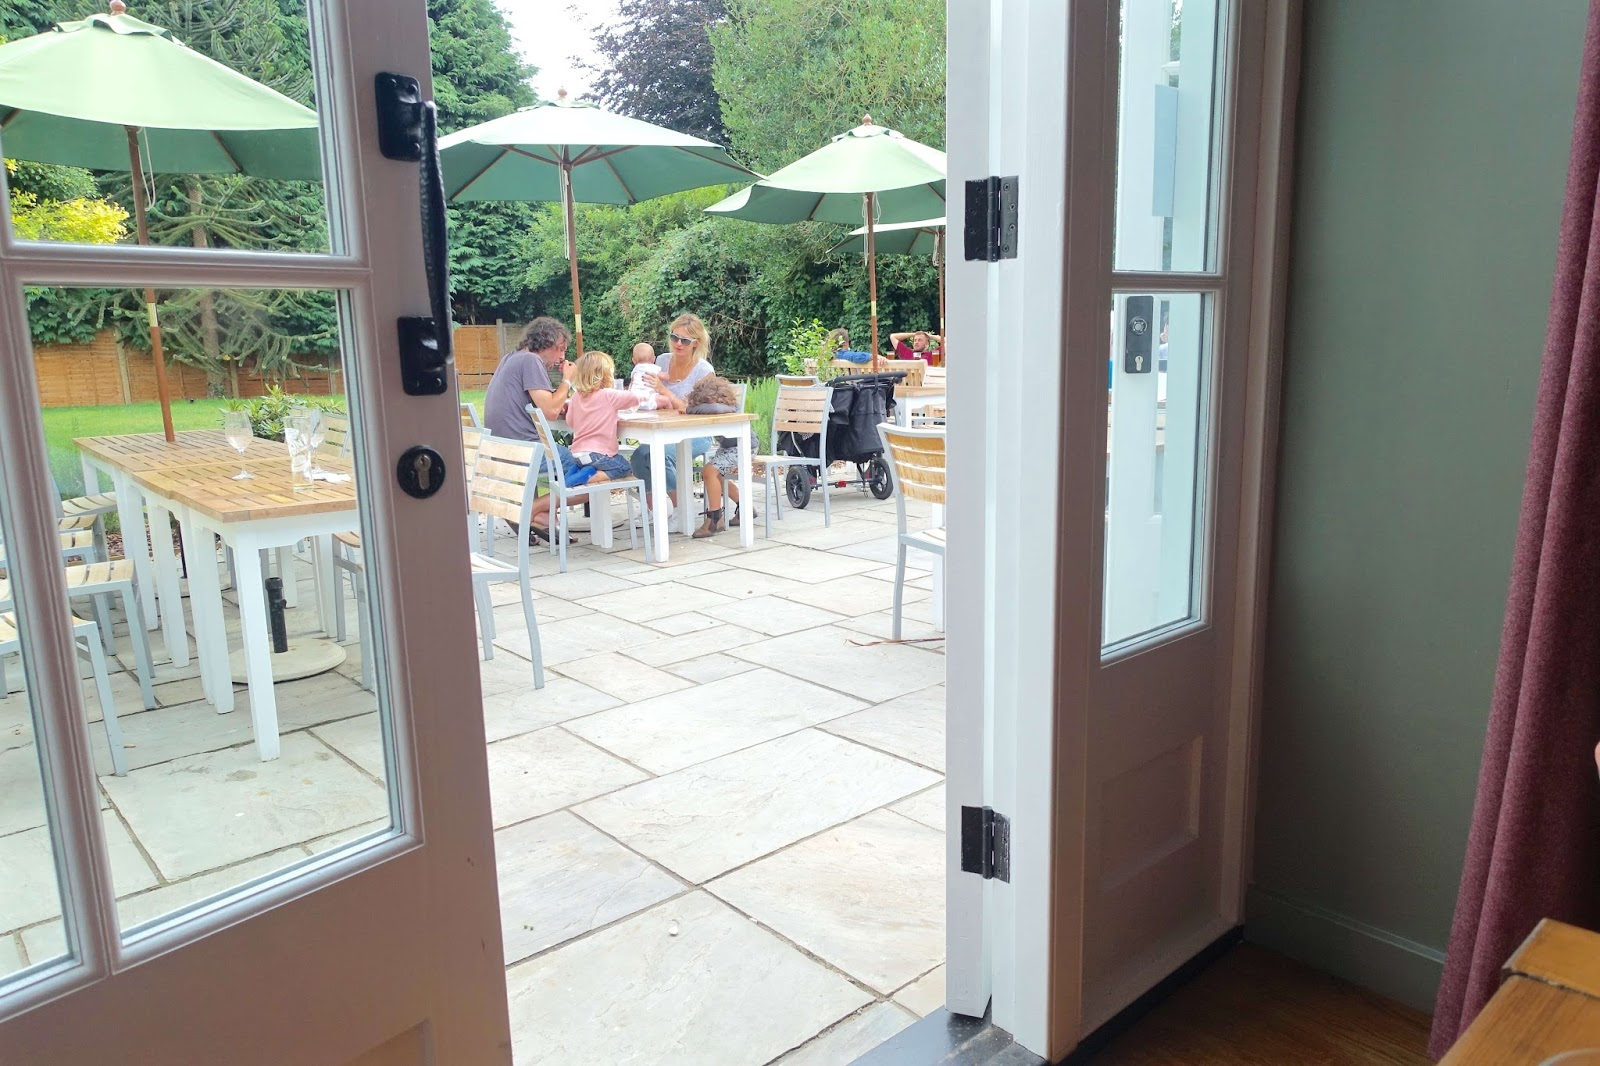 Outdoor seating area at the Barley Mow